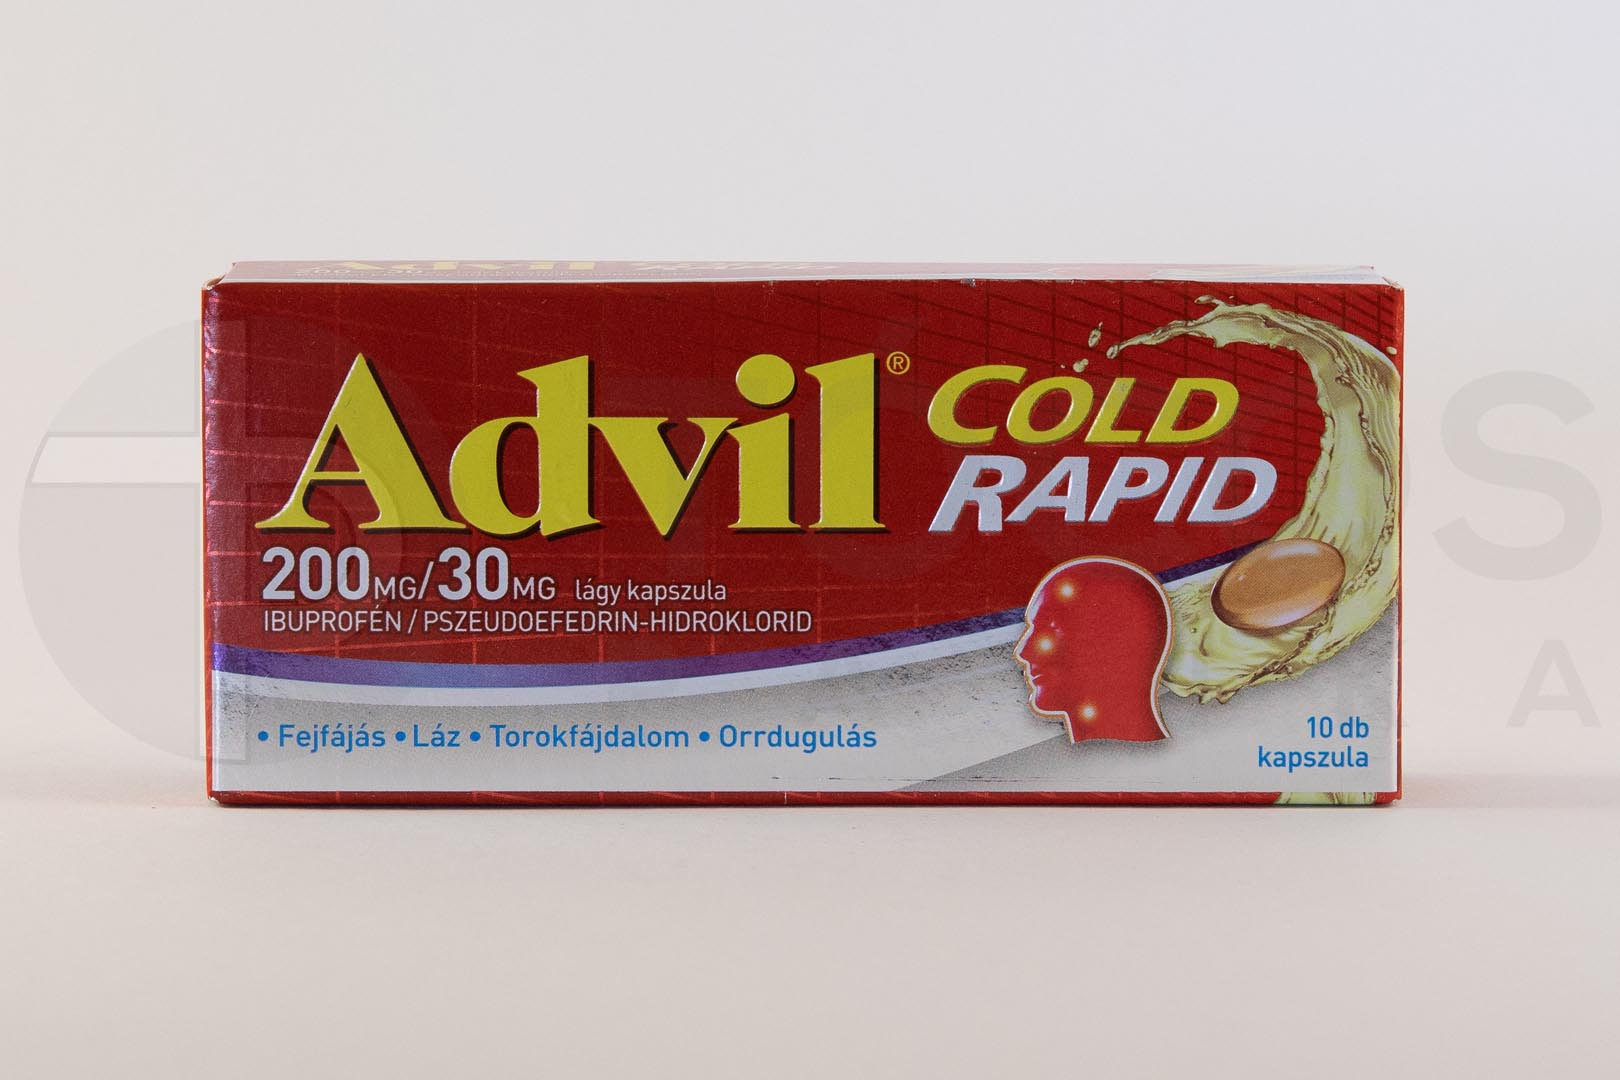 Advil Cold rapid 200 mg/30 mg lágy kapszula 10x